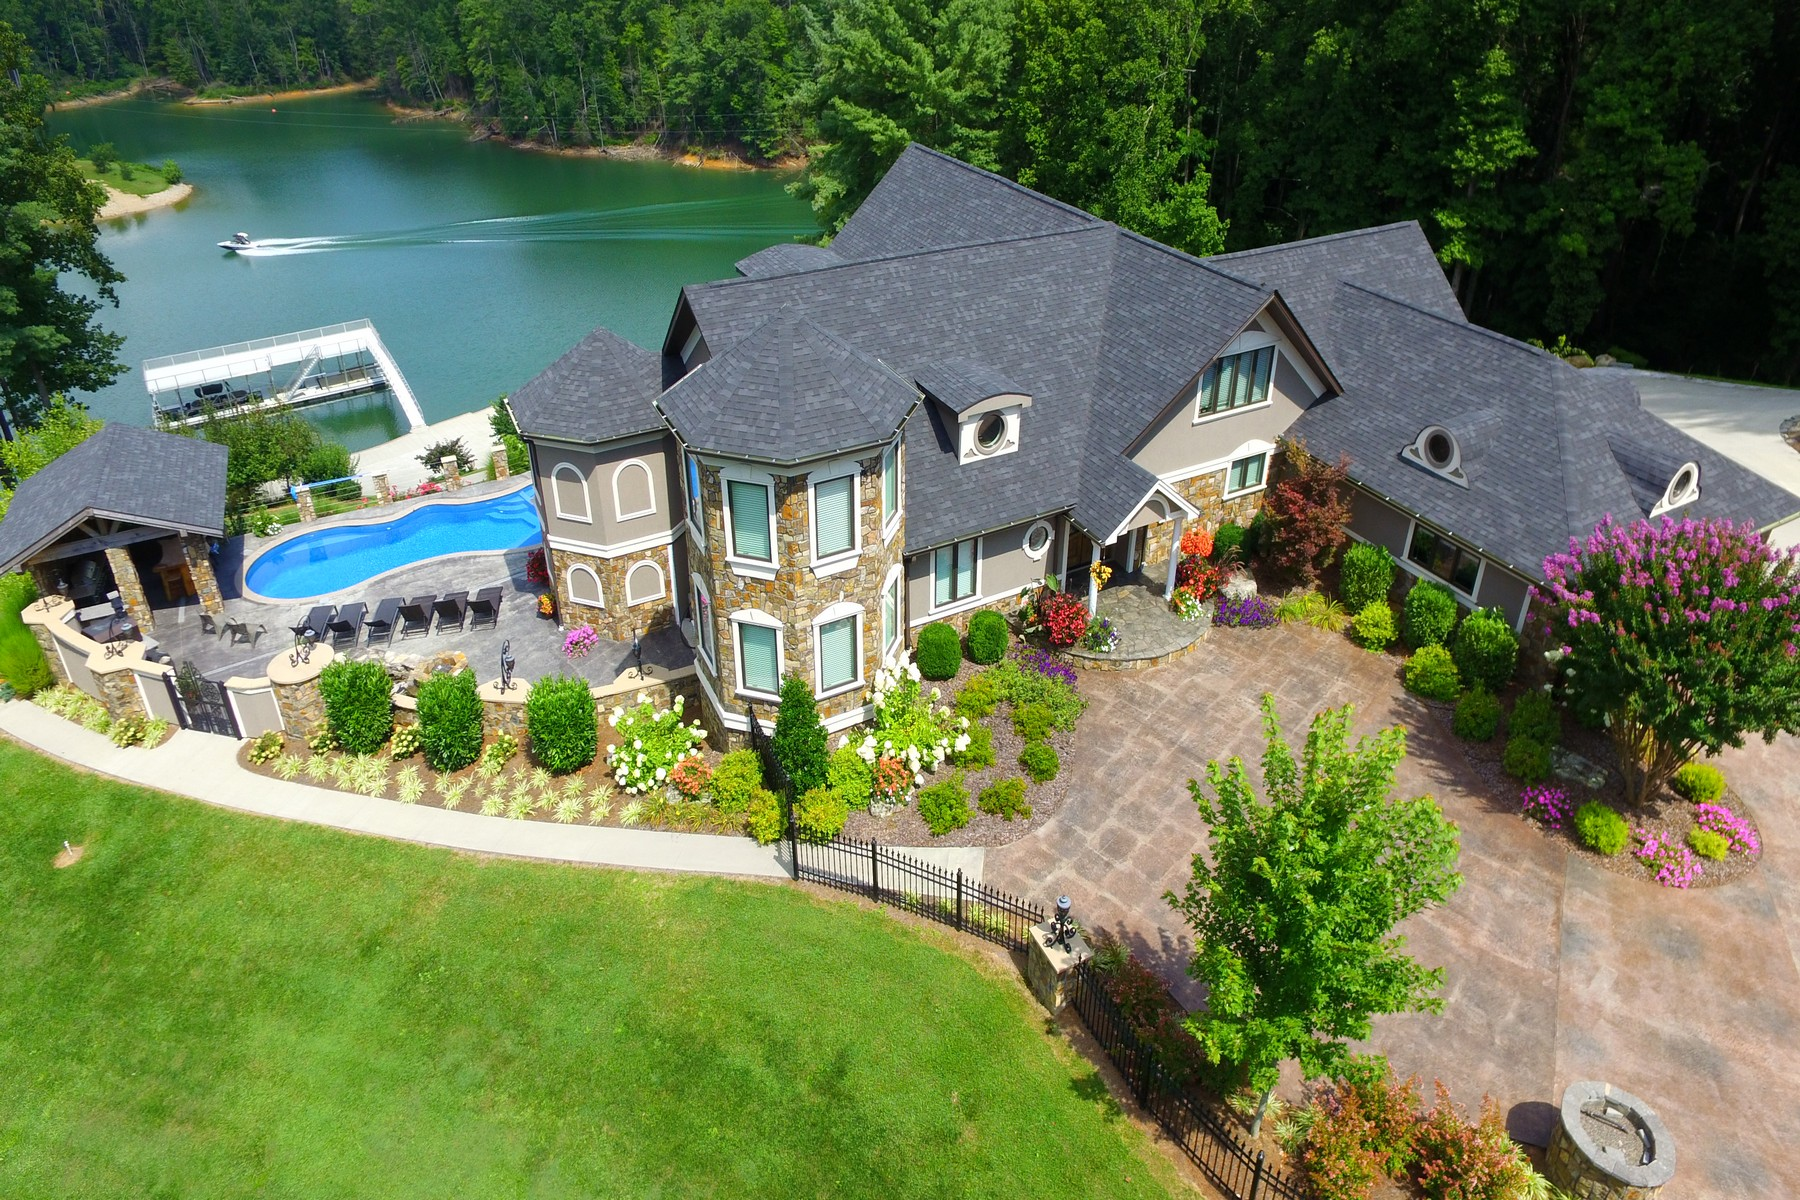 Casa Unifamiliar por un Venta en Spectacular Waterfront Estate 381 Big Oak Drive Butler, Tennessee 37640 Estados Unidos